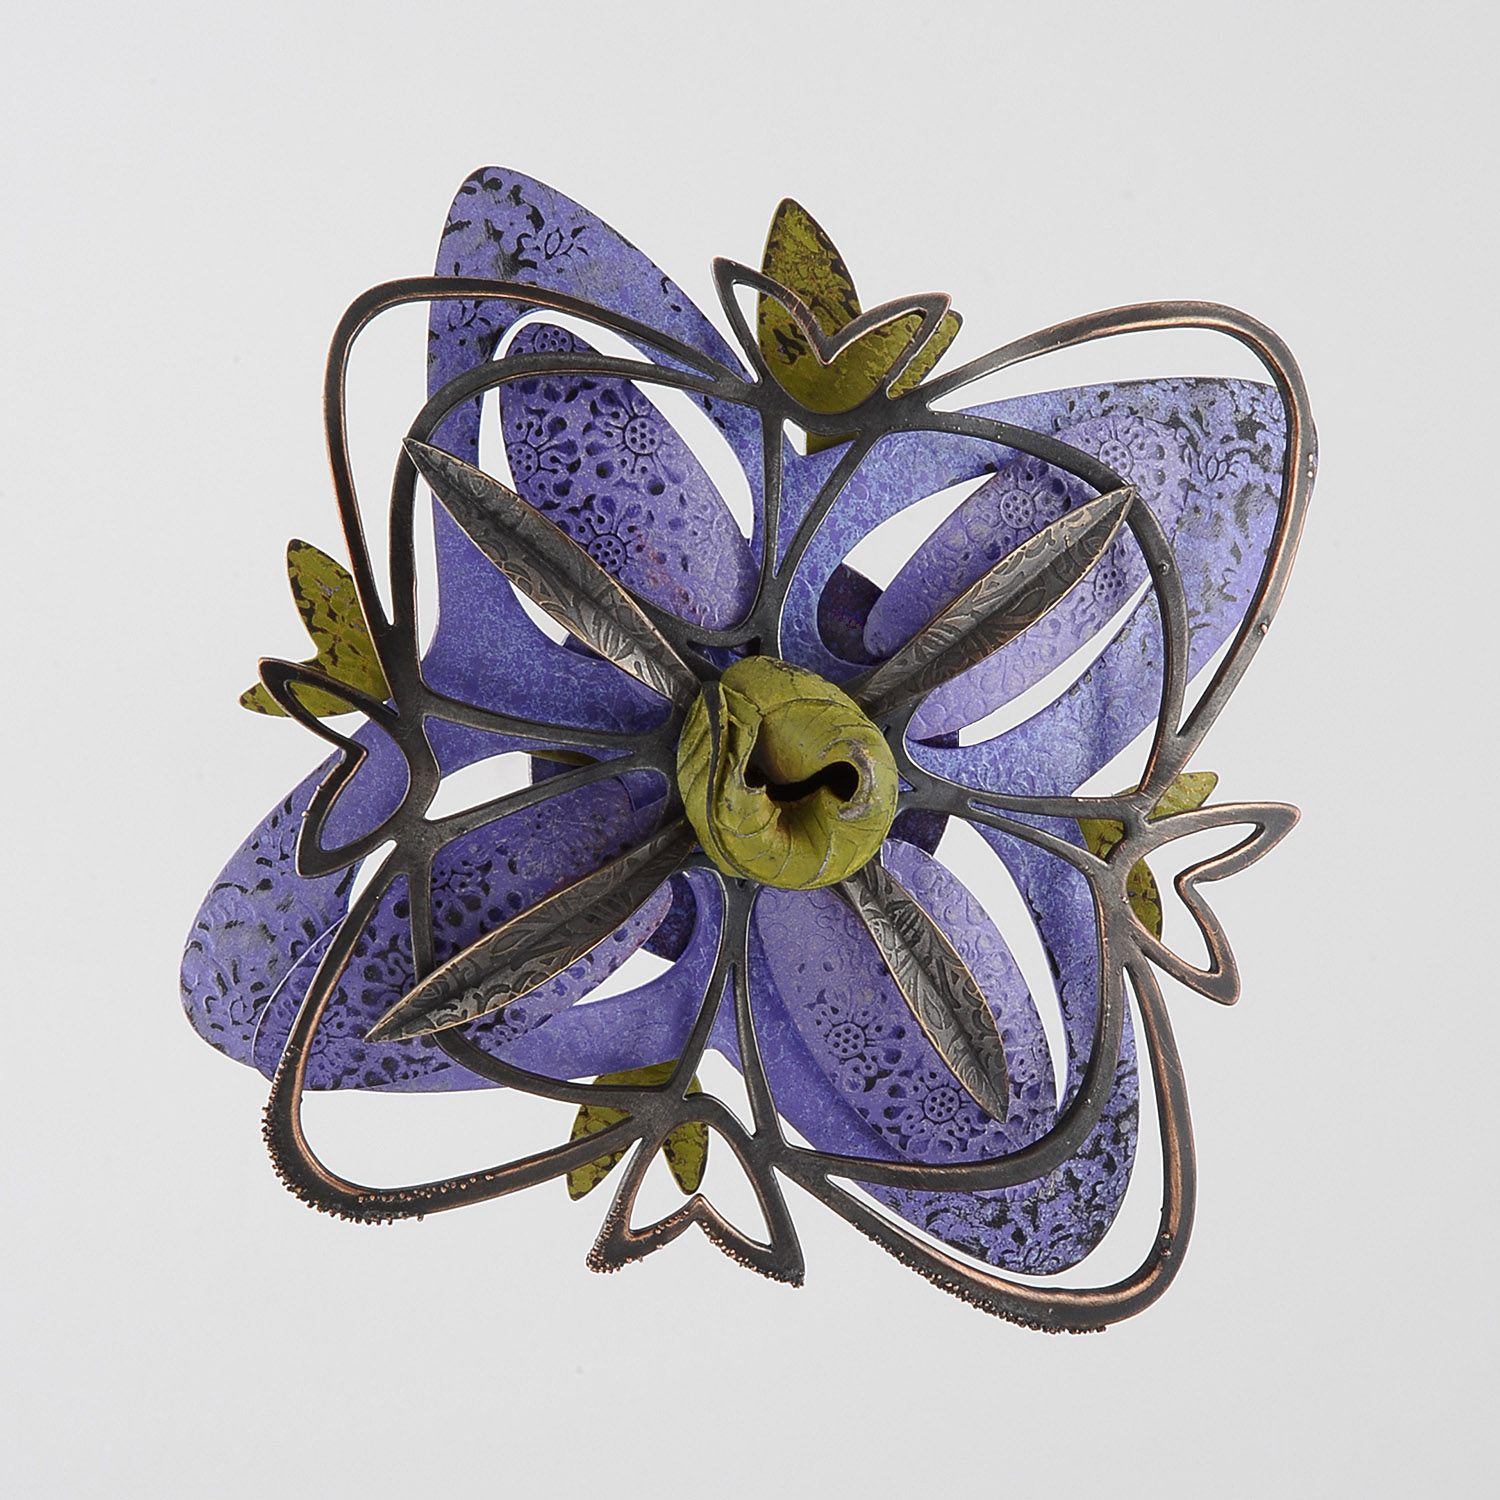 Rosette Brooch 2-15  |  2015  |  bronze, steel  |  4 x 4 x 1.5 inches